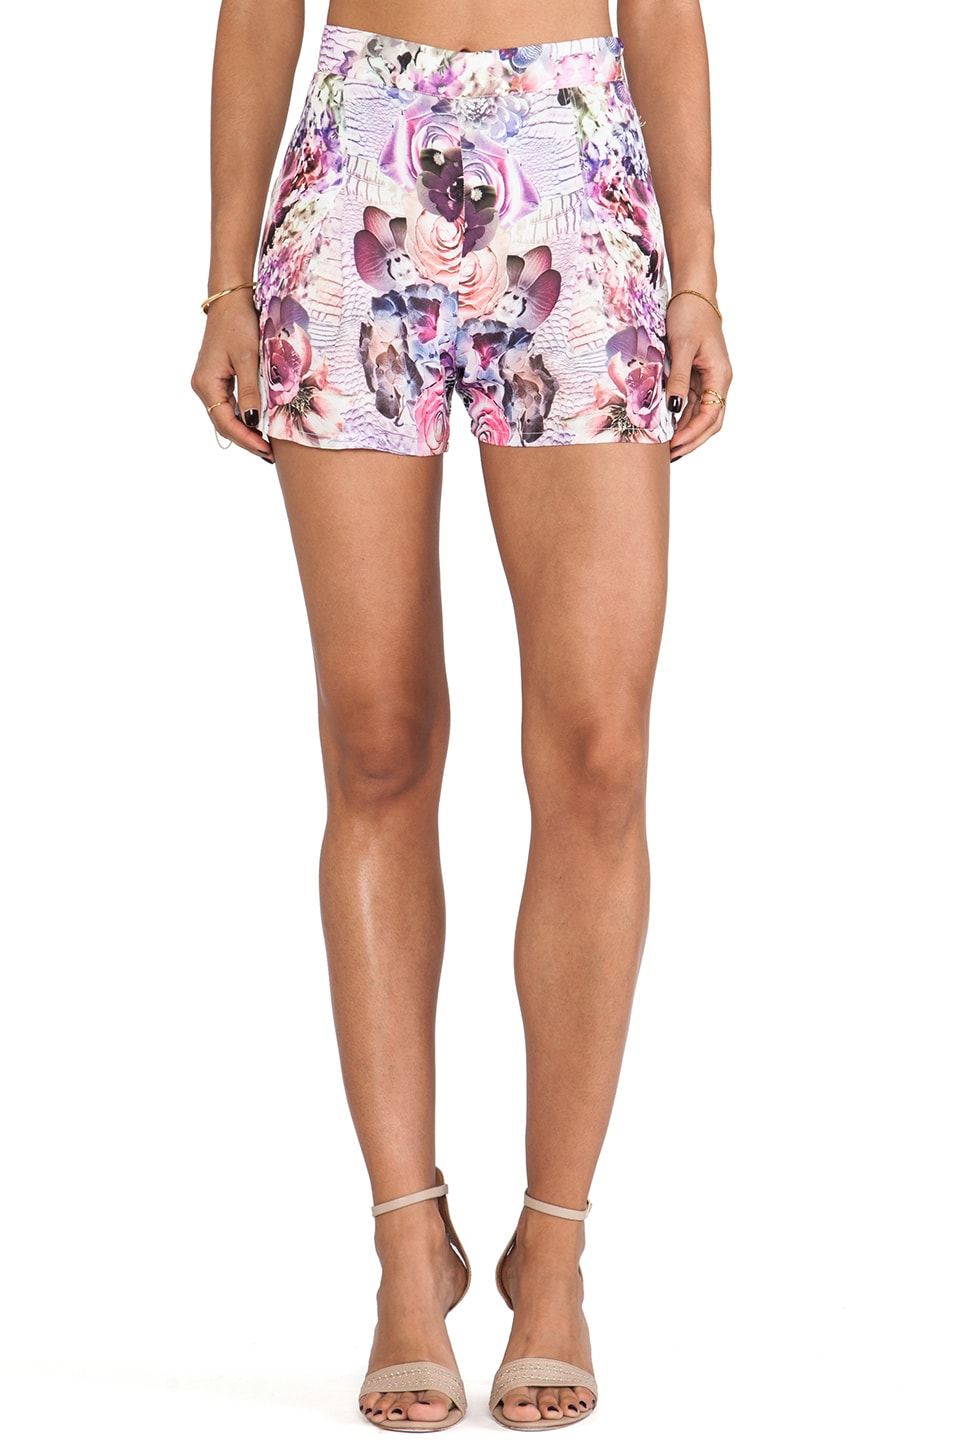 May. Scout Short in Croc Floral